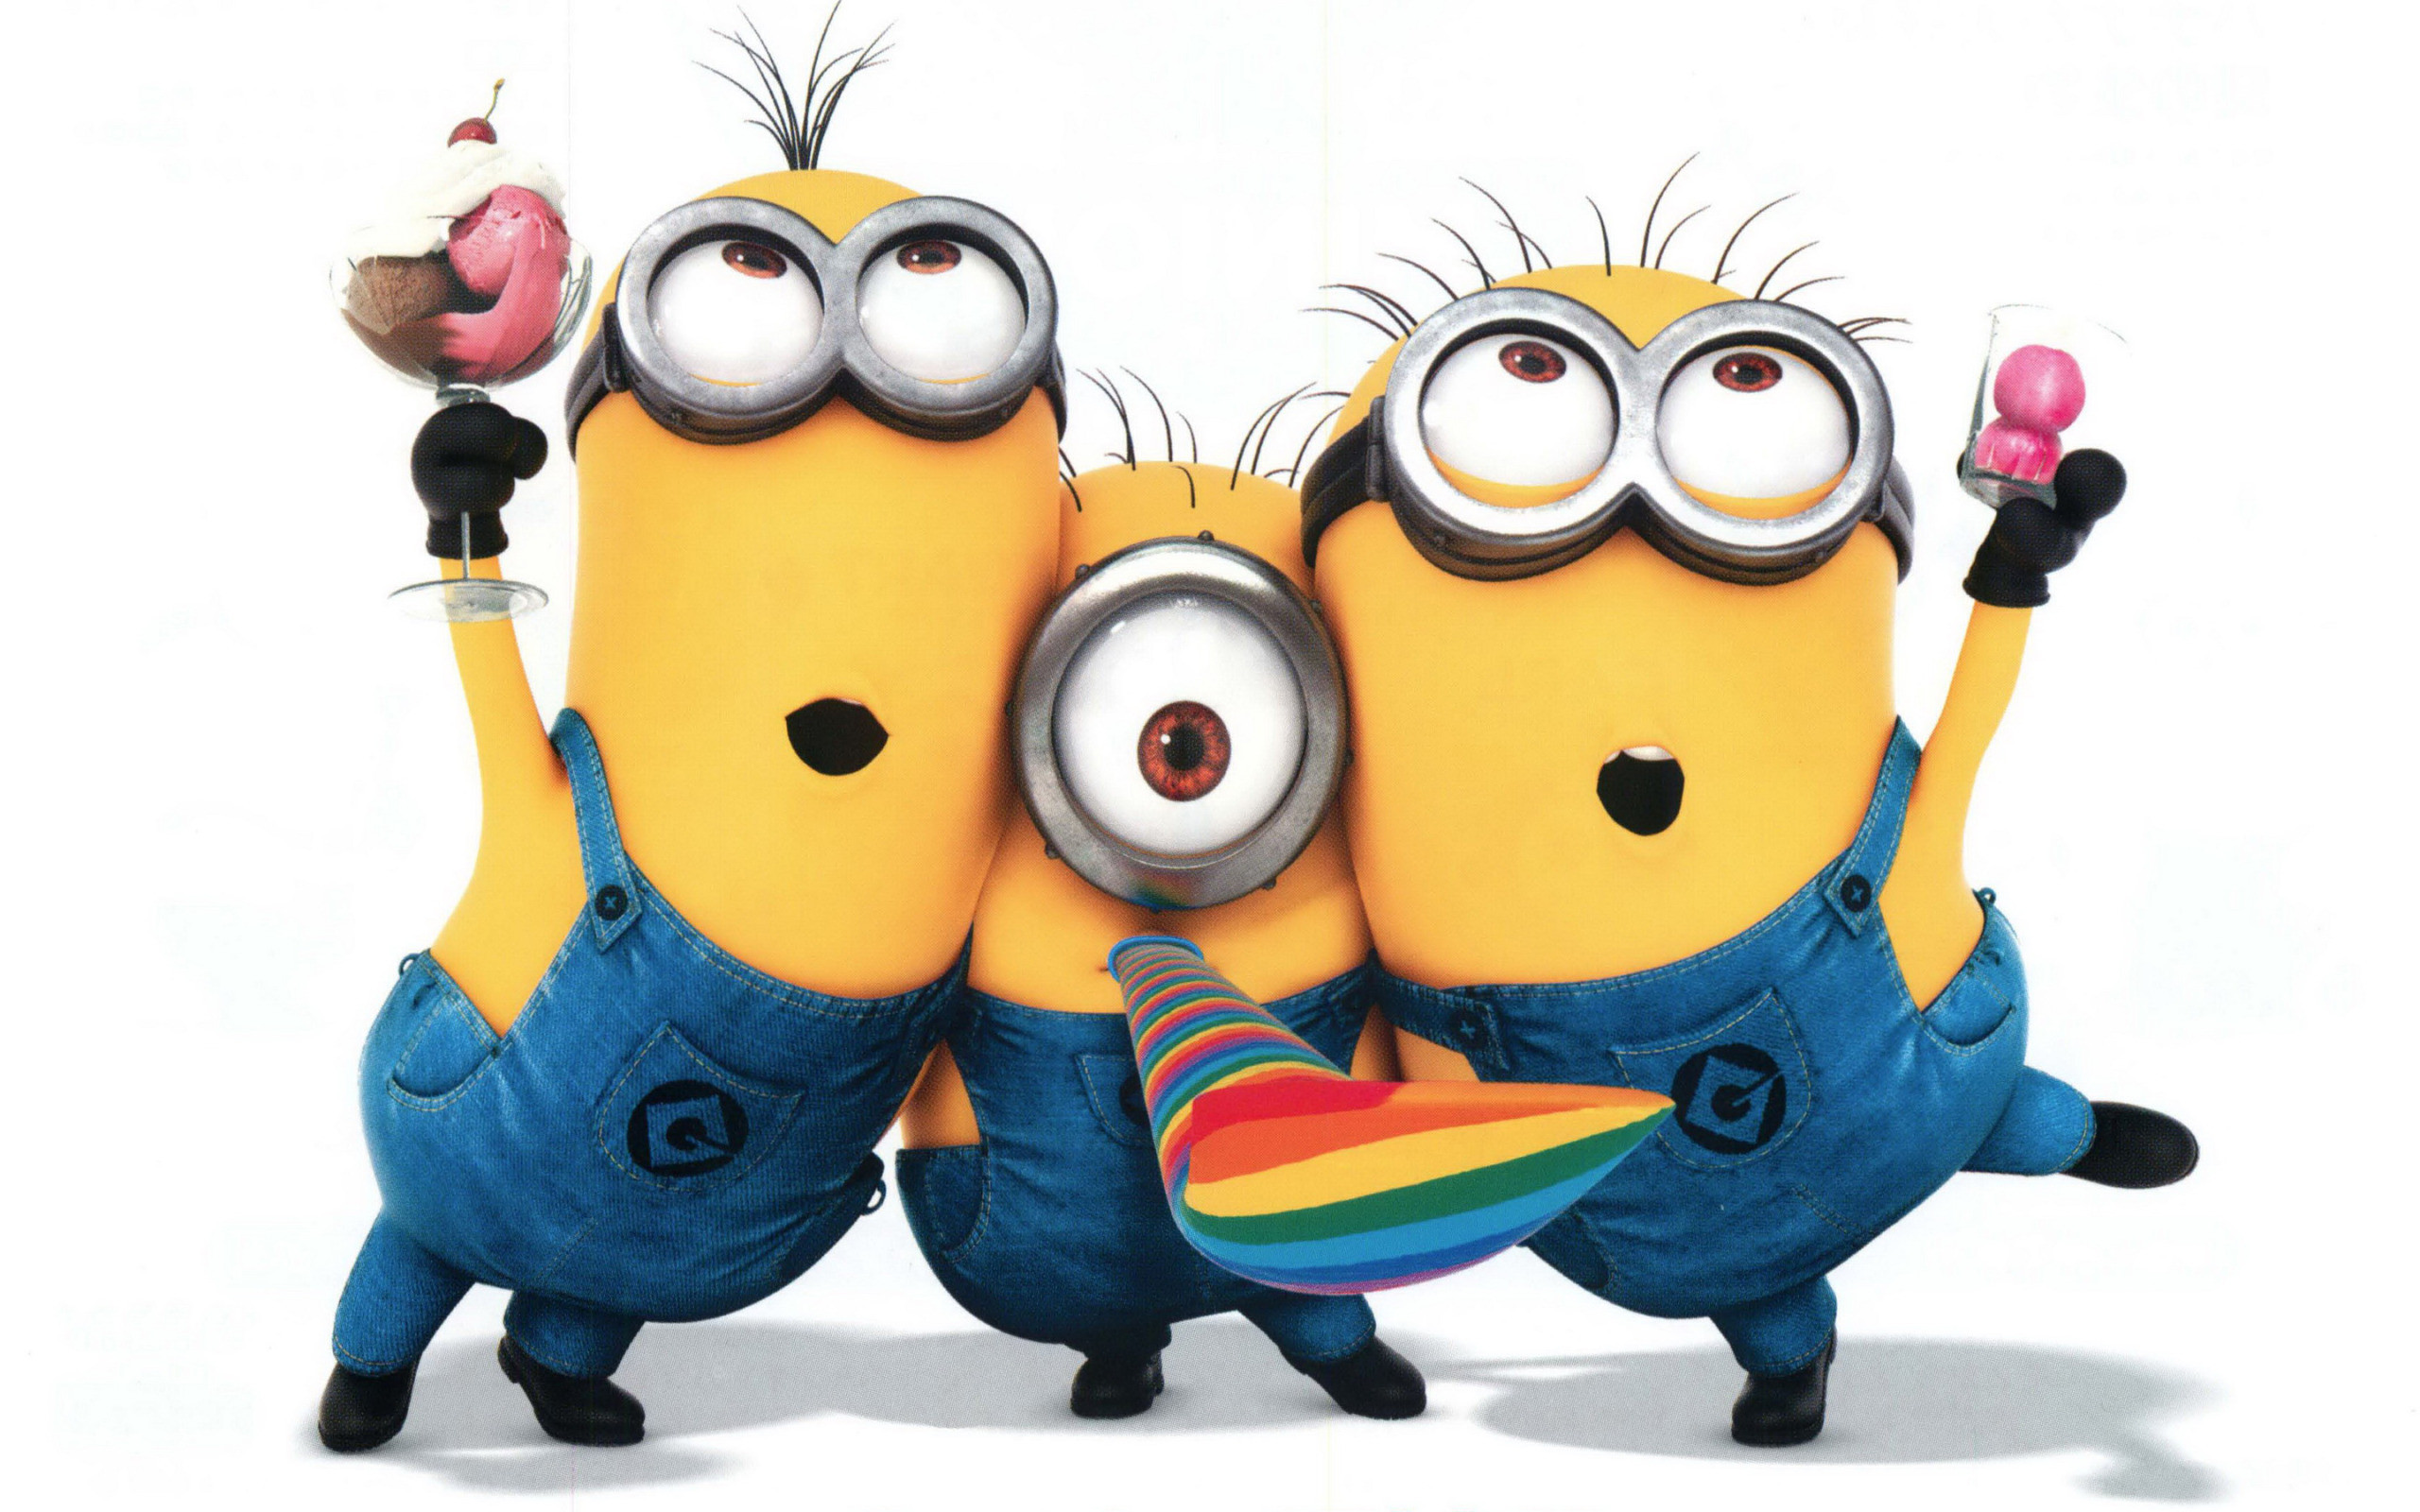 2560x1600 Despicable Me 2 Minions wallpaper